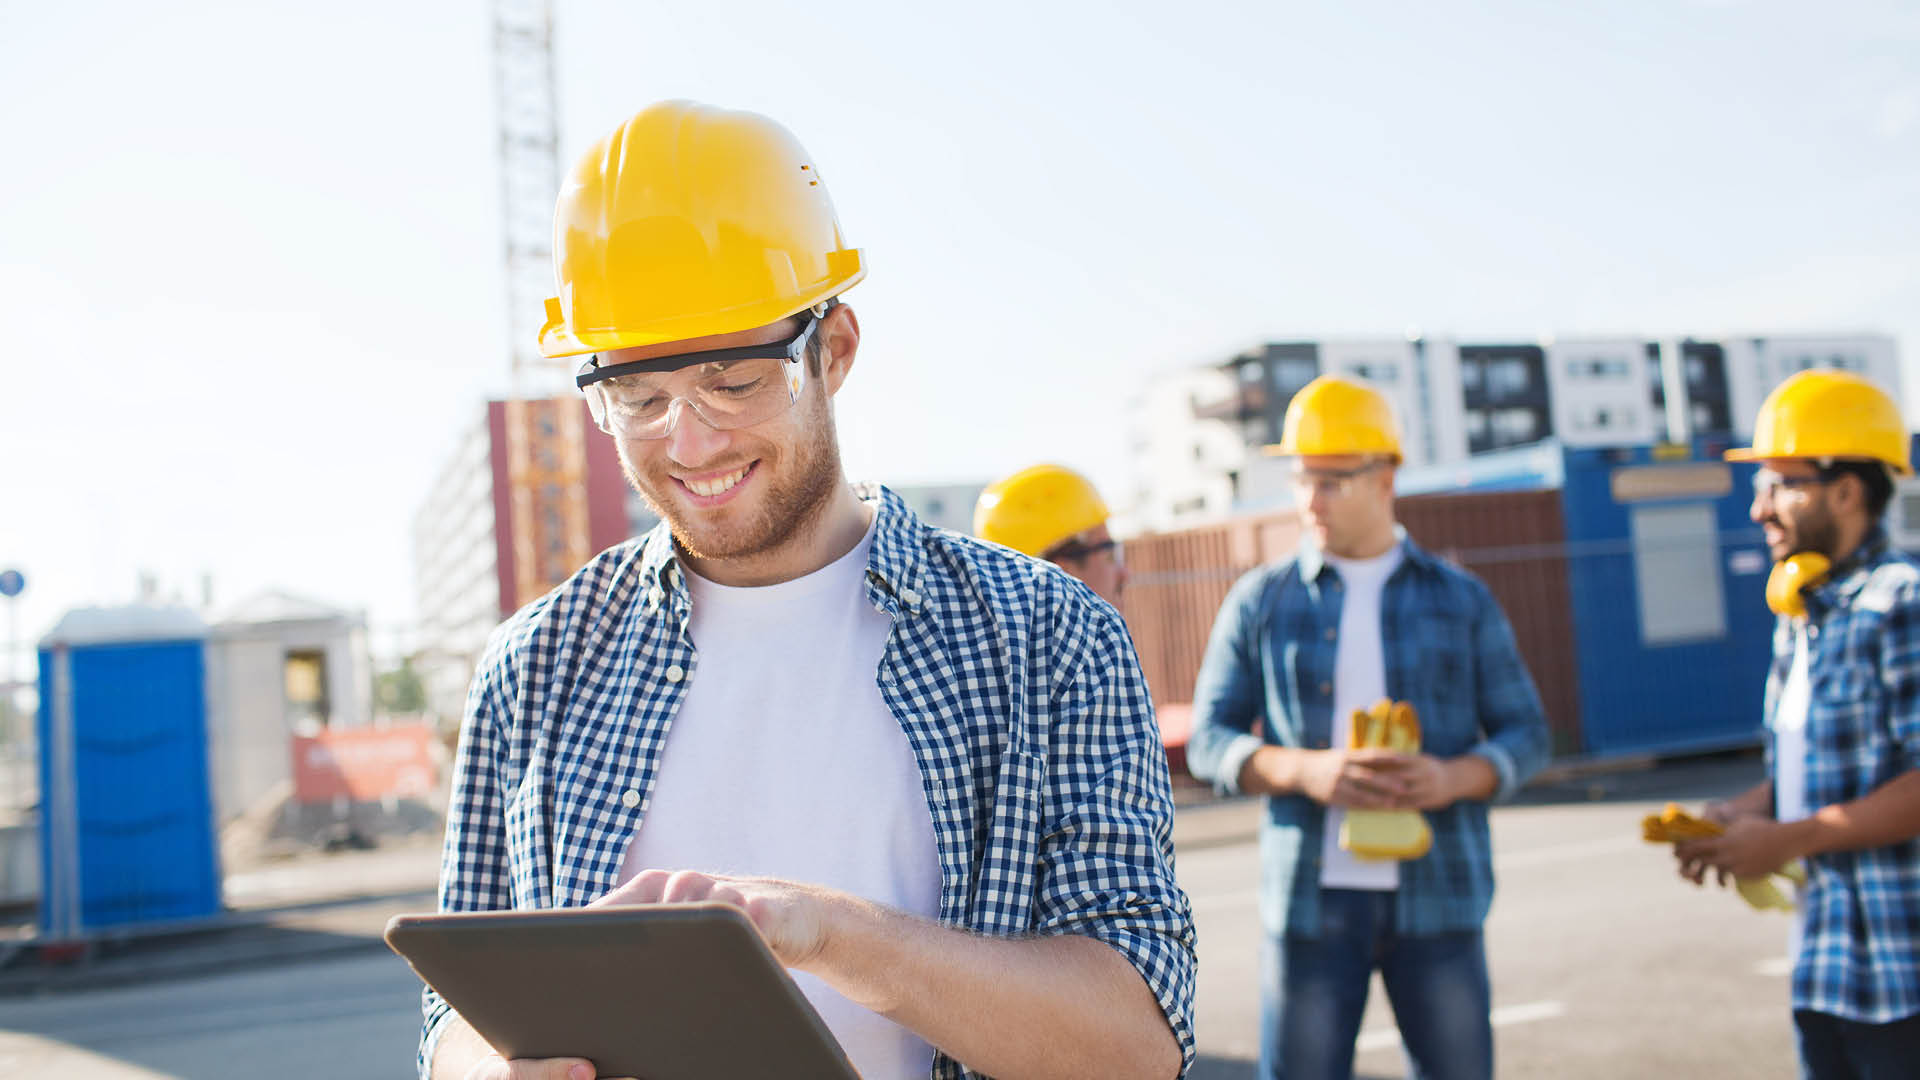 CSQ construction skills queensland funding higher level skills